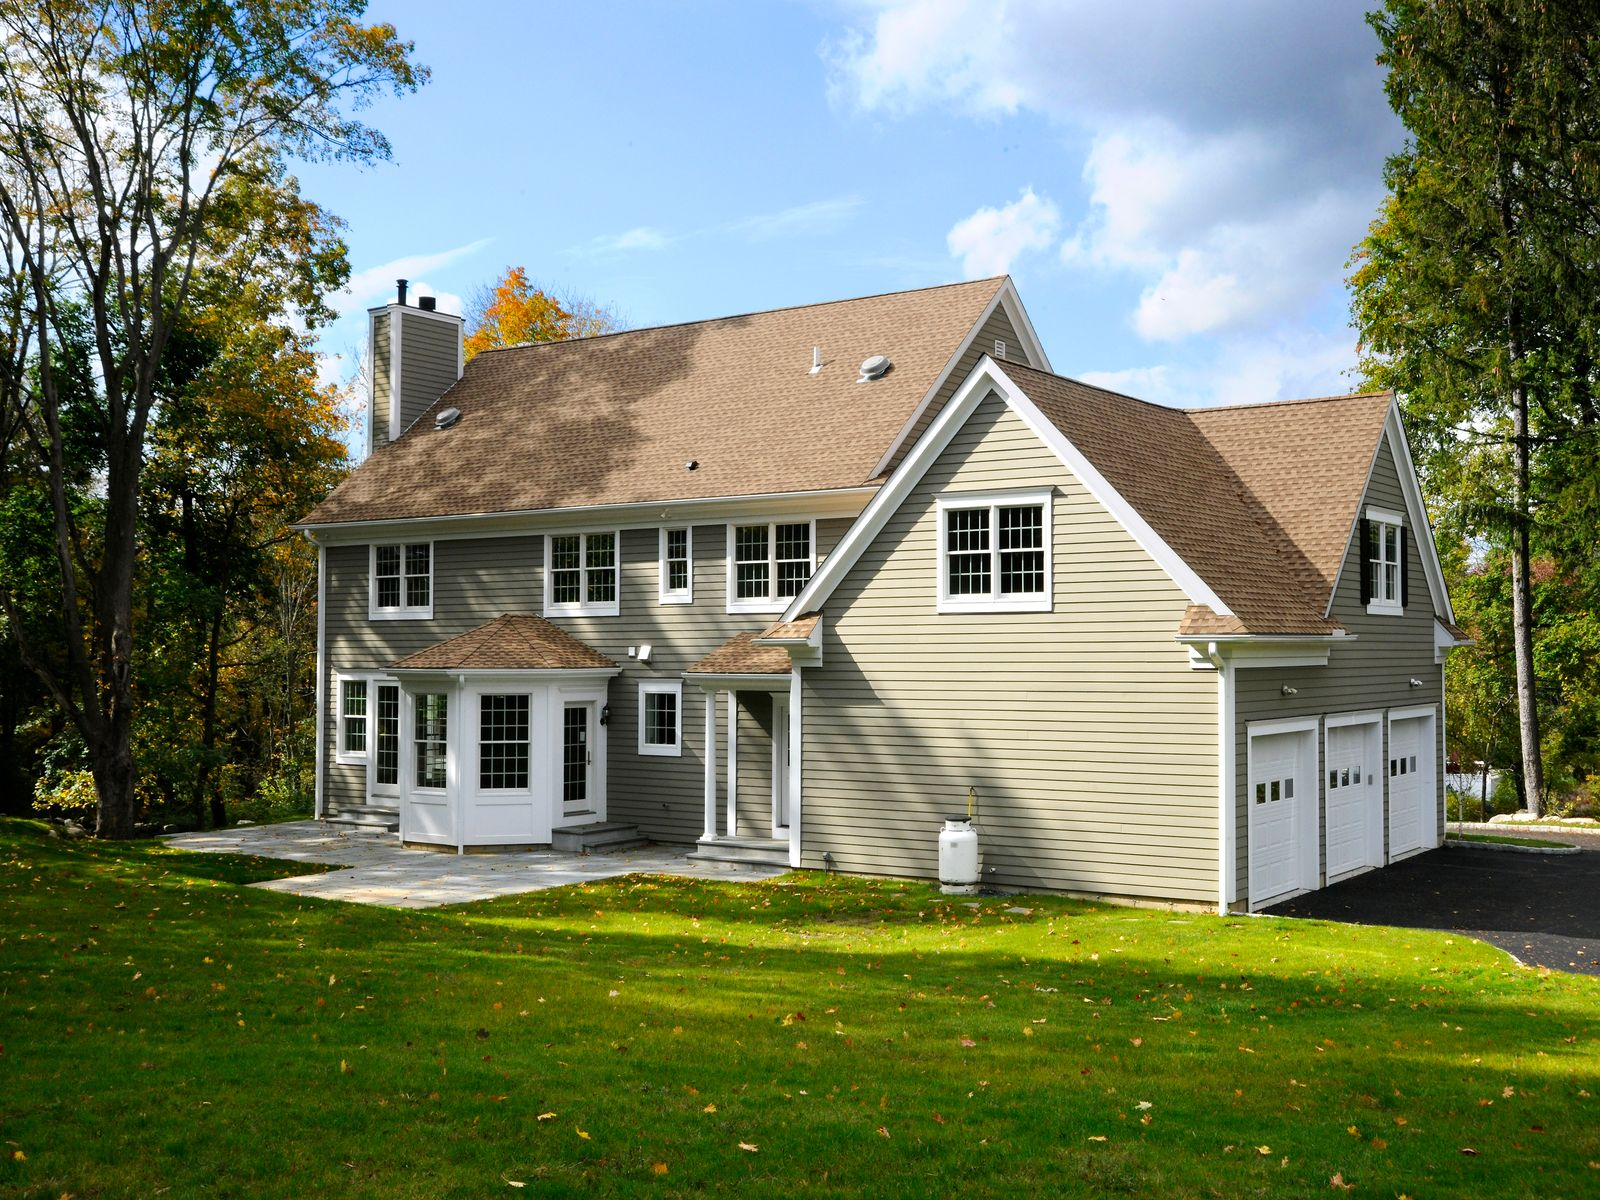 New Construction-Classic Colonial Style